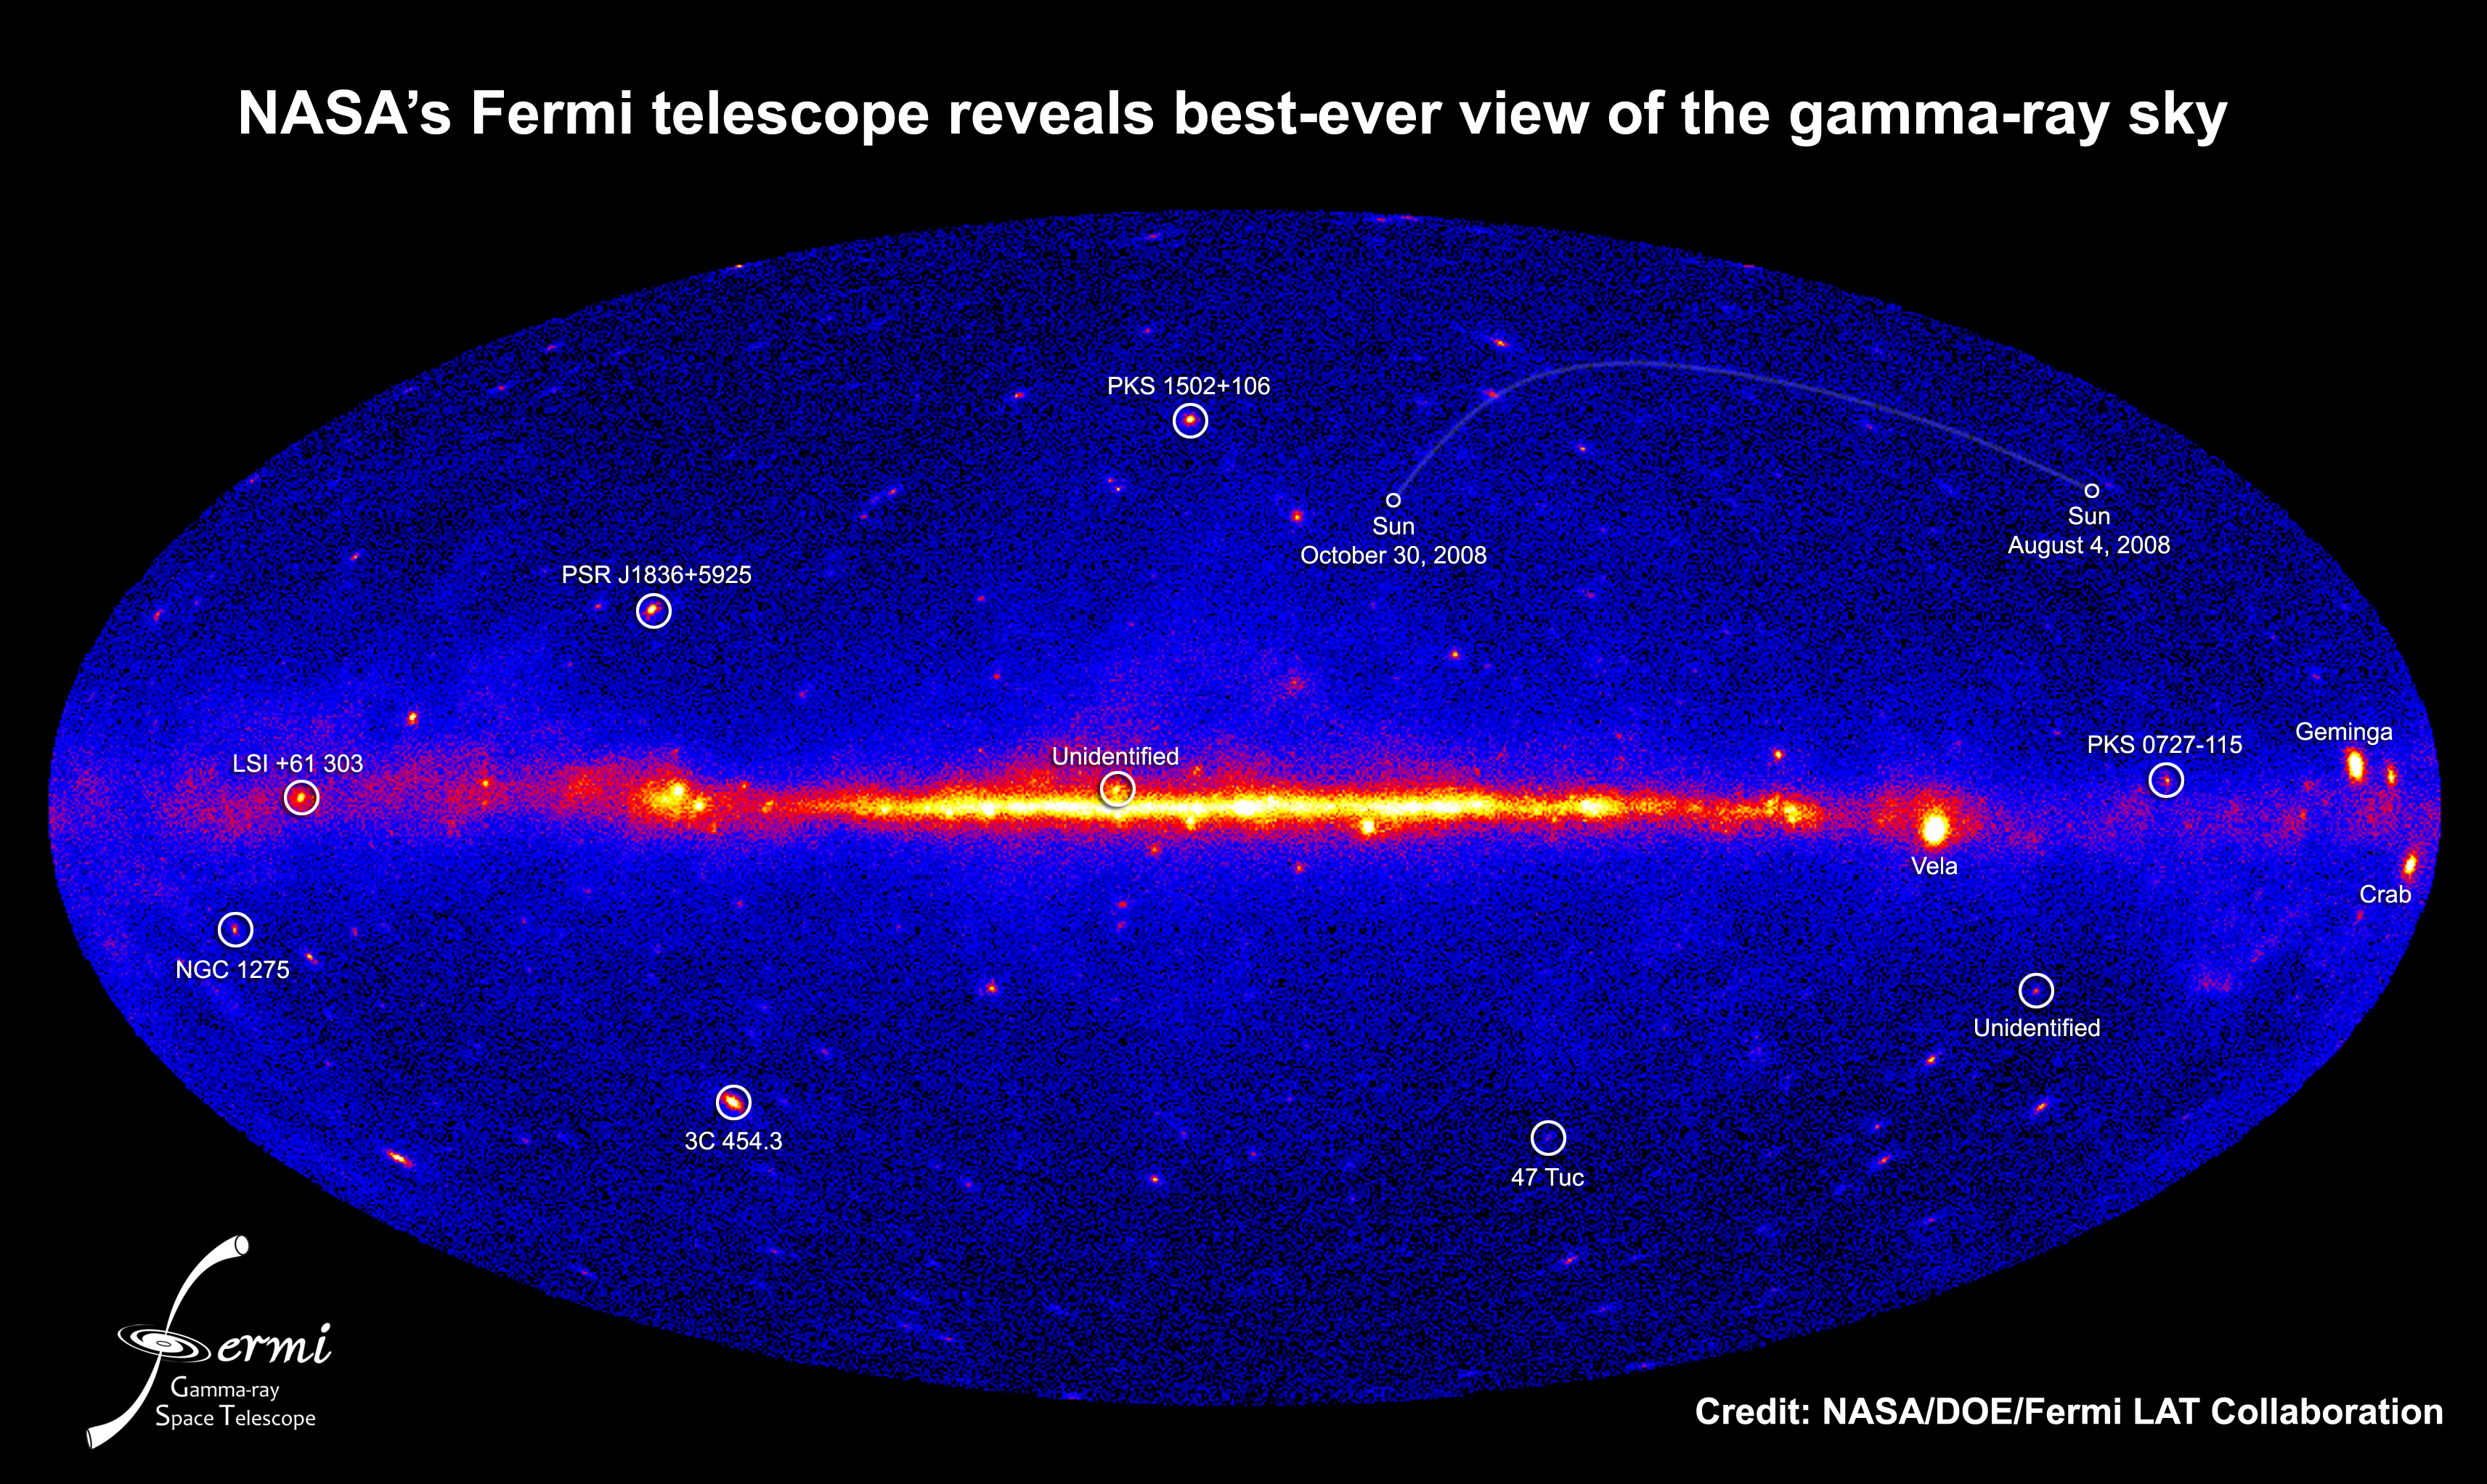 NASA - Fermi's Best-Ever Look at the Gamma-Ray Sky